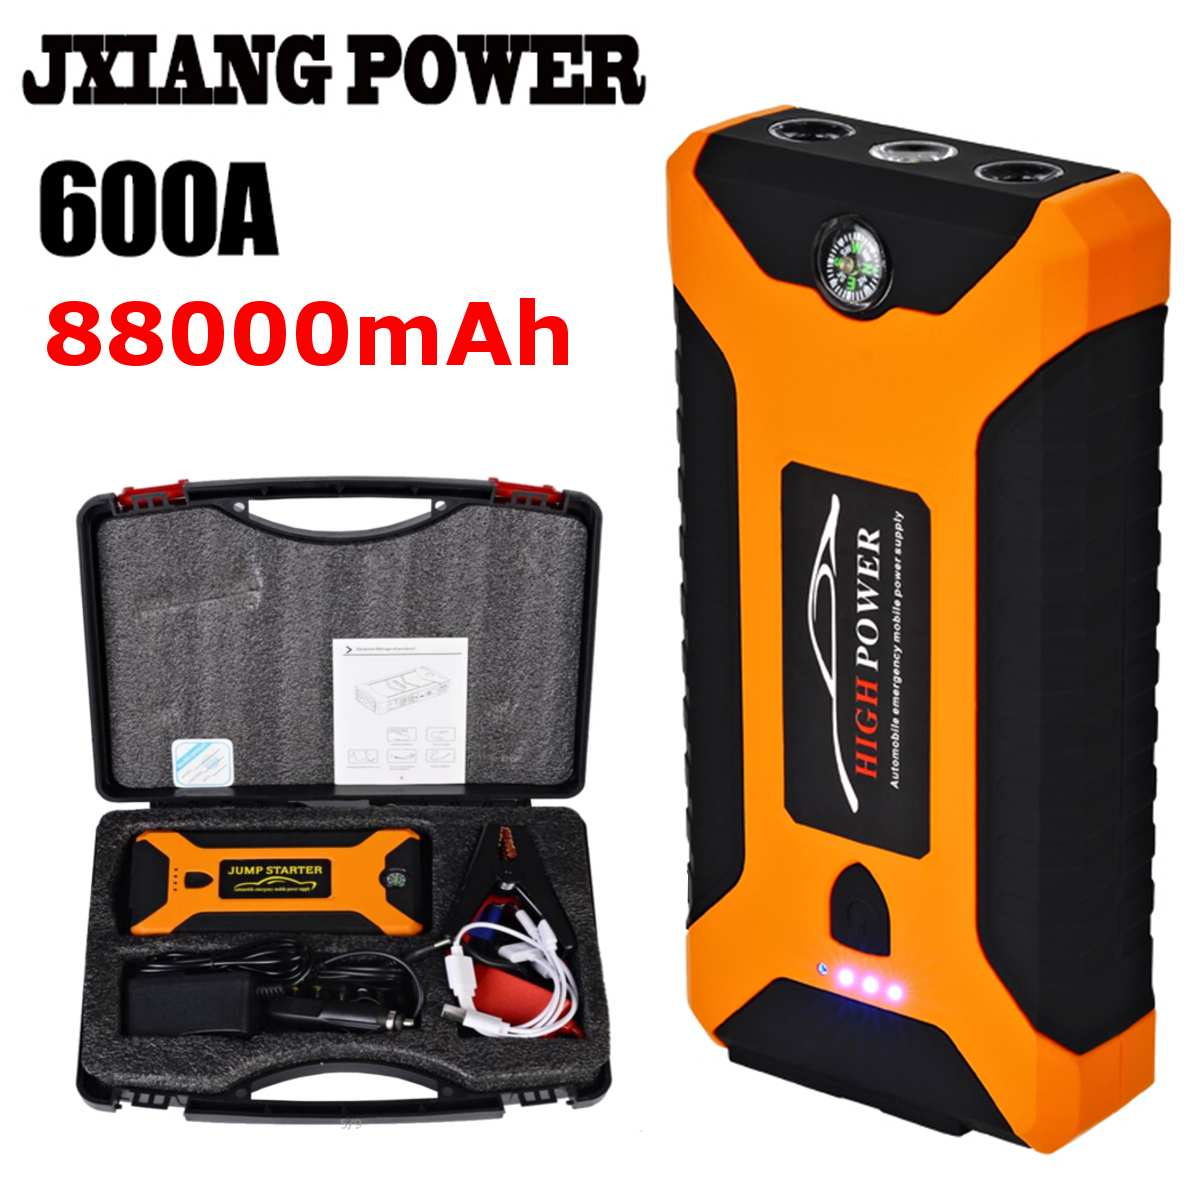 88000mAh Super Power Car Jump Starter Power Bank 600A Portable Car Battery Charger Booster Charger 4USB 12V SOS Starting Device image